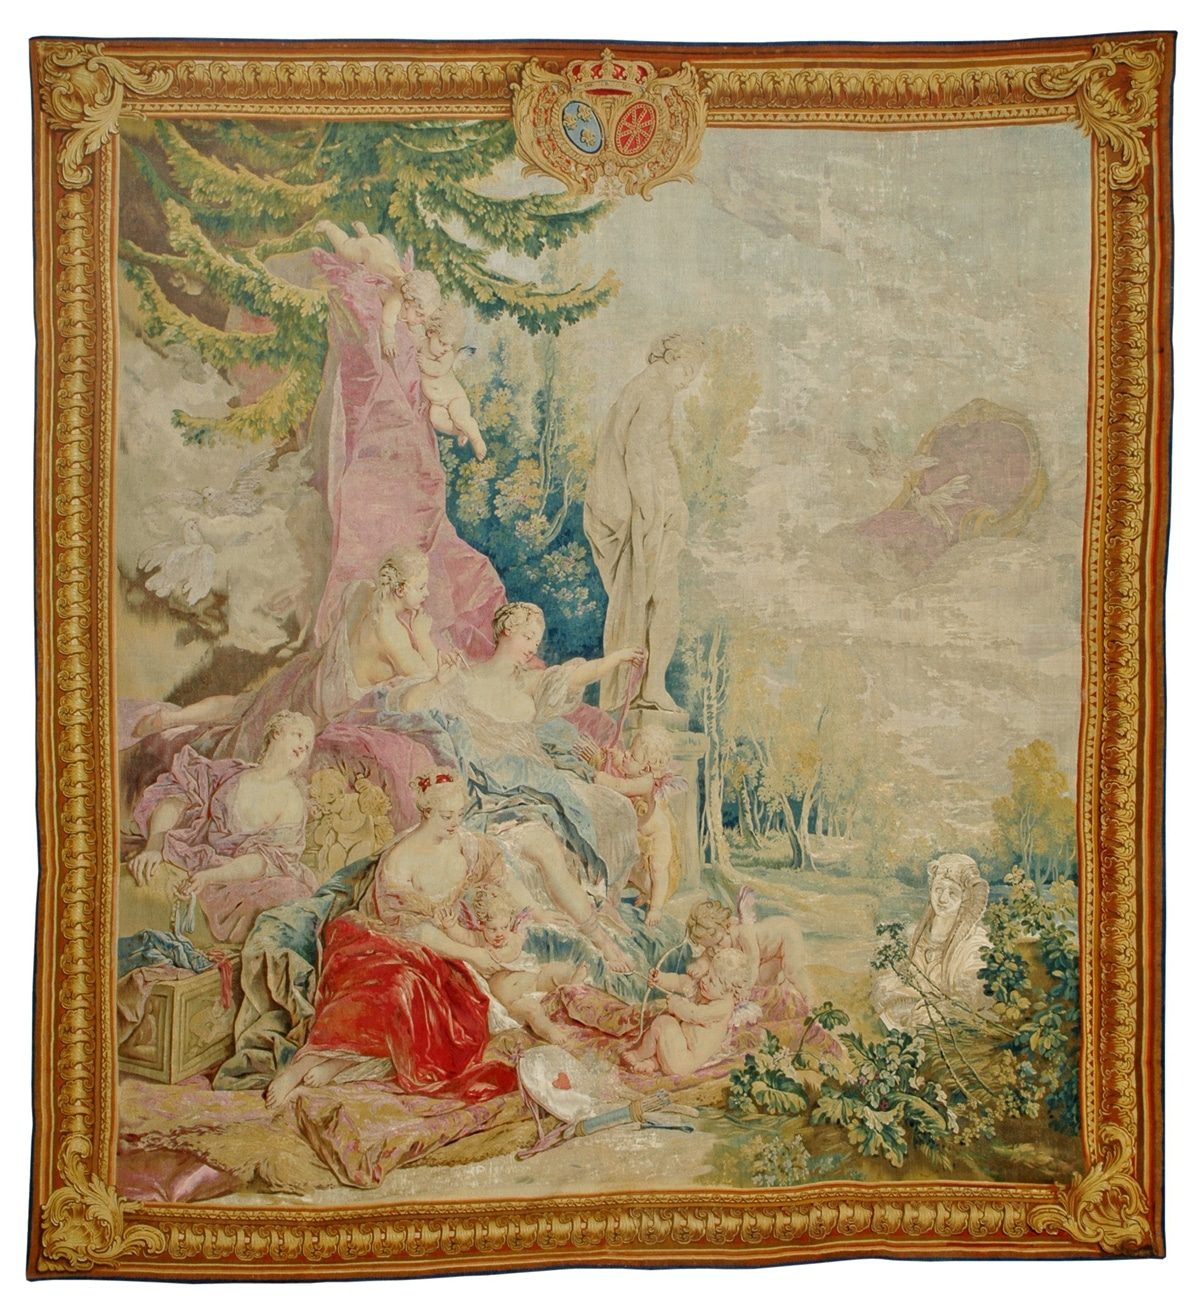 Rugs, carpets and tapestries sold 14